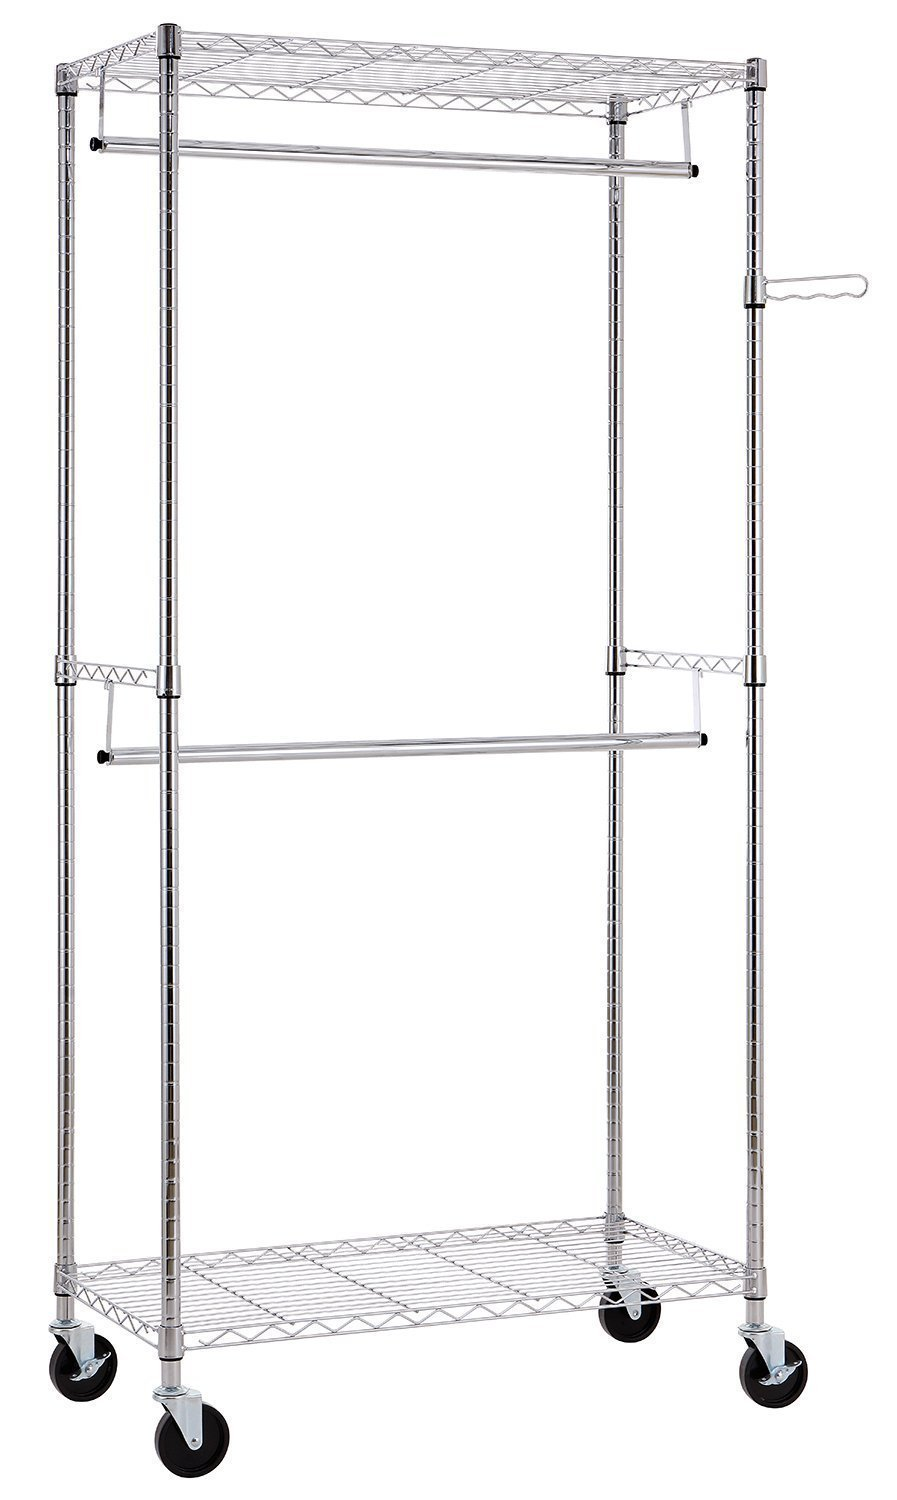 Finnhomy Heavy Duty Rolling Garment Rack Clothes Rack With Double Hanger  Rods And Shelves, Portable Closet Organizer With Wheels, 1u2033 Diameter  Thicken Steel ...